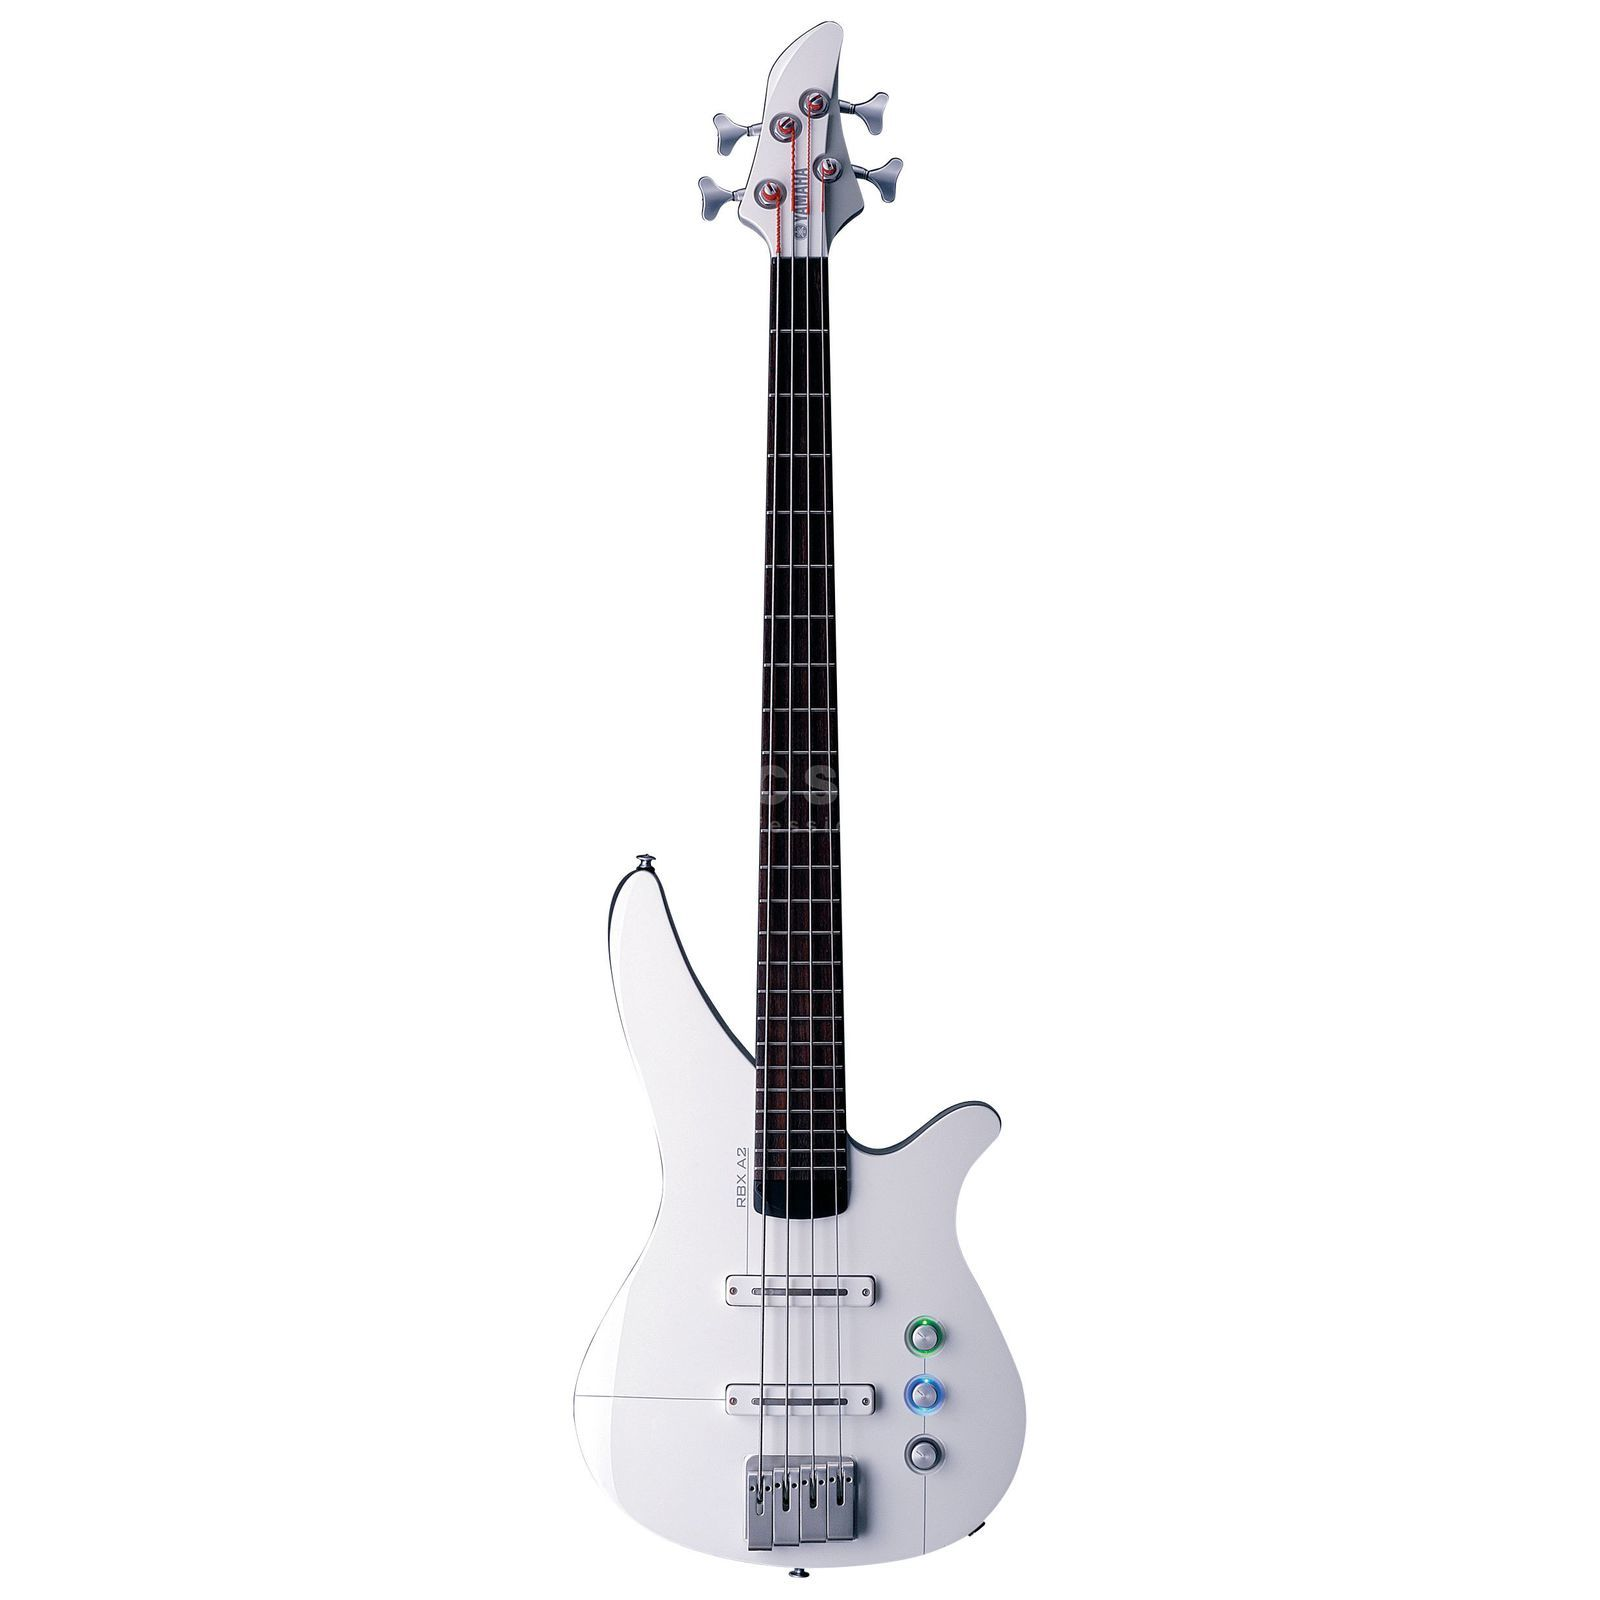 Yamaha RBX4 A2 Bass Guitar, White    Изображение товара